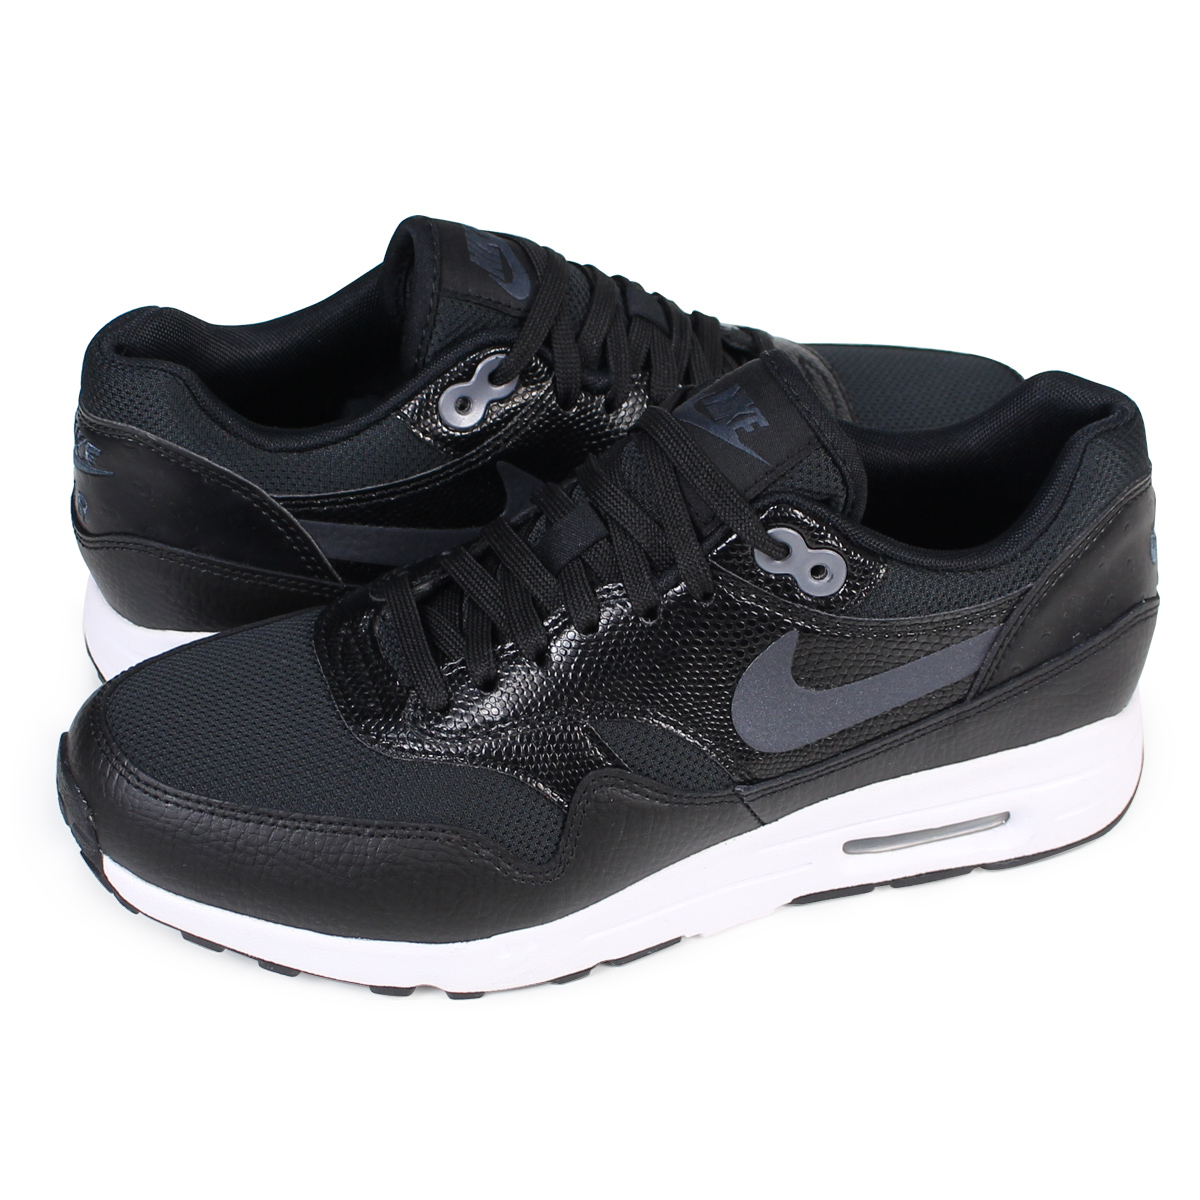 NIKE WMNS AIR MAX 1 ULTRA Kie Ney AMAX 1 ultra 2.0 Lady's sneakers 881,104 002 shoes black